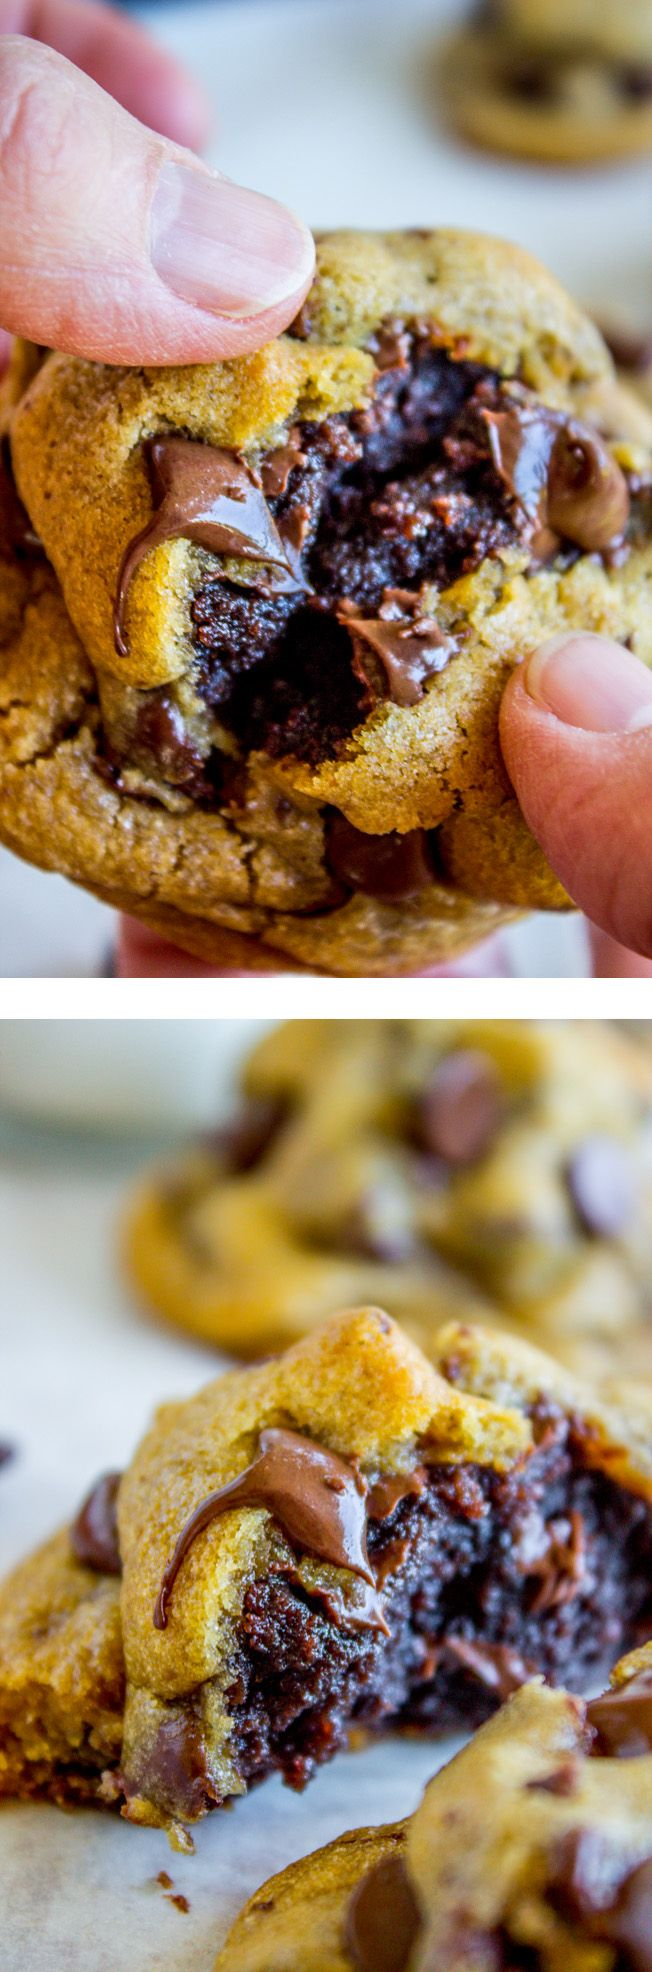 Brownie-Stuffed Chocolate Chip Cookies from The Food Charlatan. The contest between brownies and cookies is officially over, because now you can have them AT THE SAME TIME. Rich, soft, fudgy brownies, all stuffed inside golden tender chocolate chip cookies... Basically heaven. Pass the milk! These cookies are decadent and are perfect for any get together, cookie plate, or holiday dessert spread!